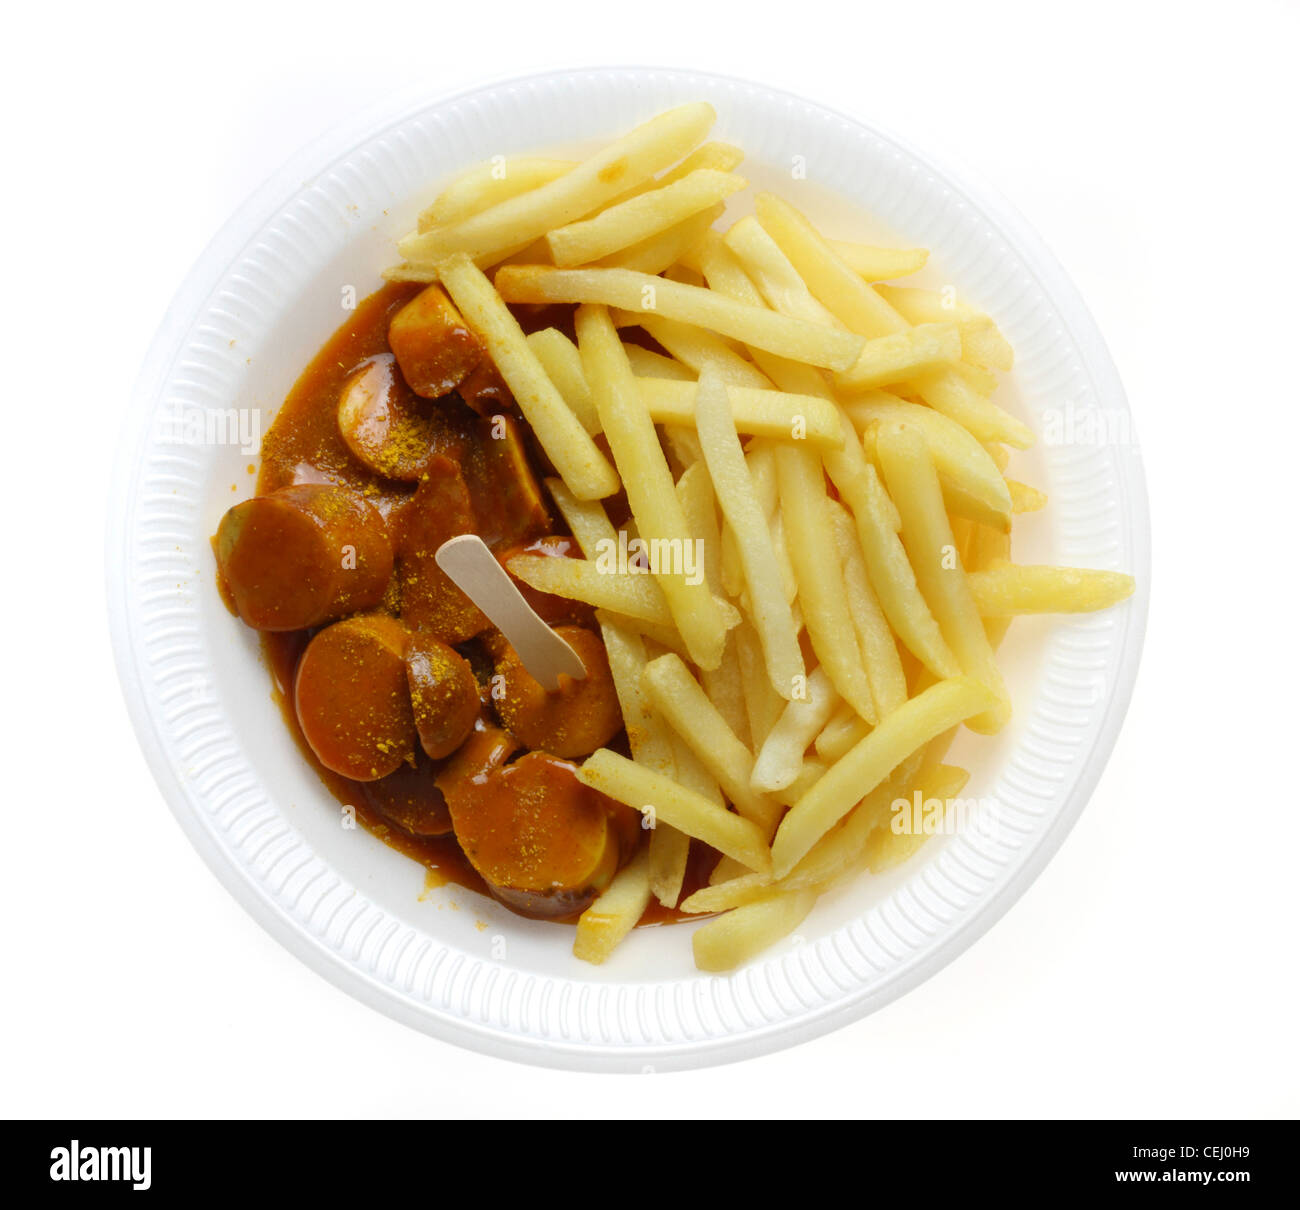 Nutrition, fast food. French fries with a  curry wurst, a Bratwurst style sausage with a spicy curry and tomato - Stock Image